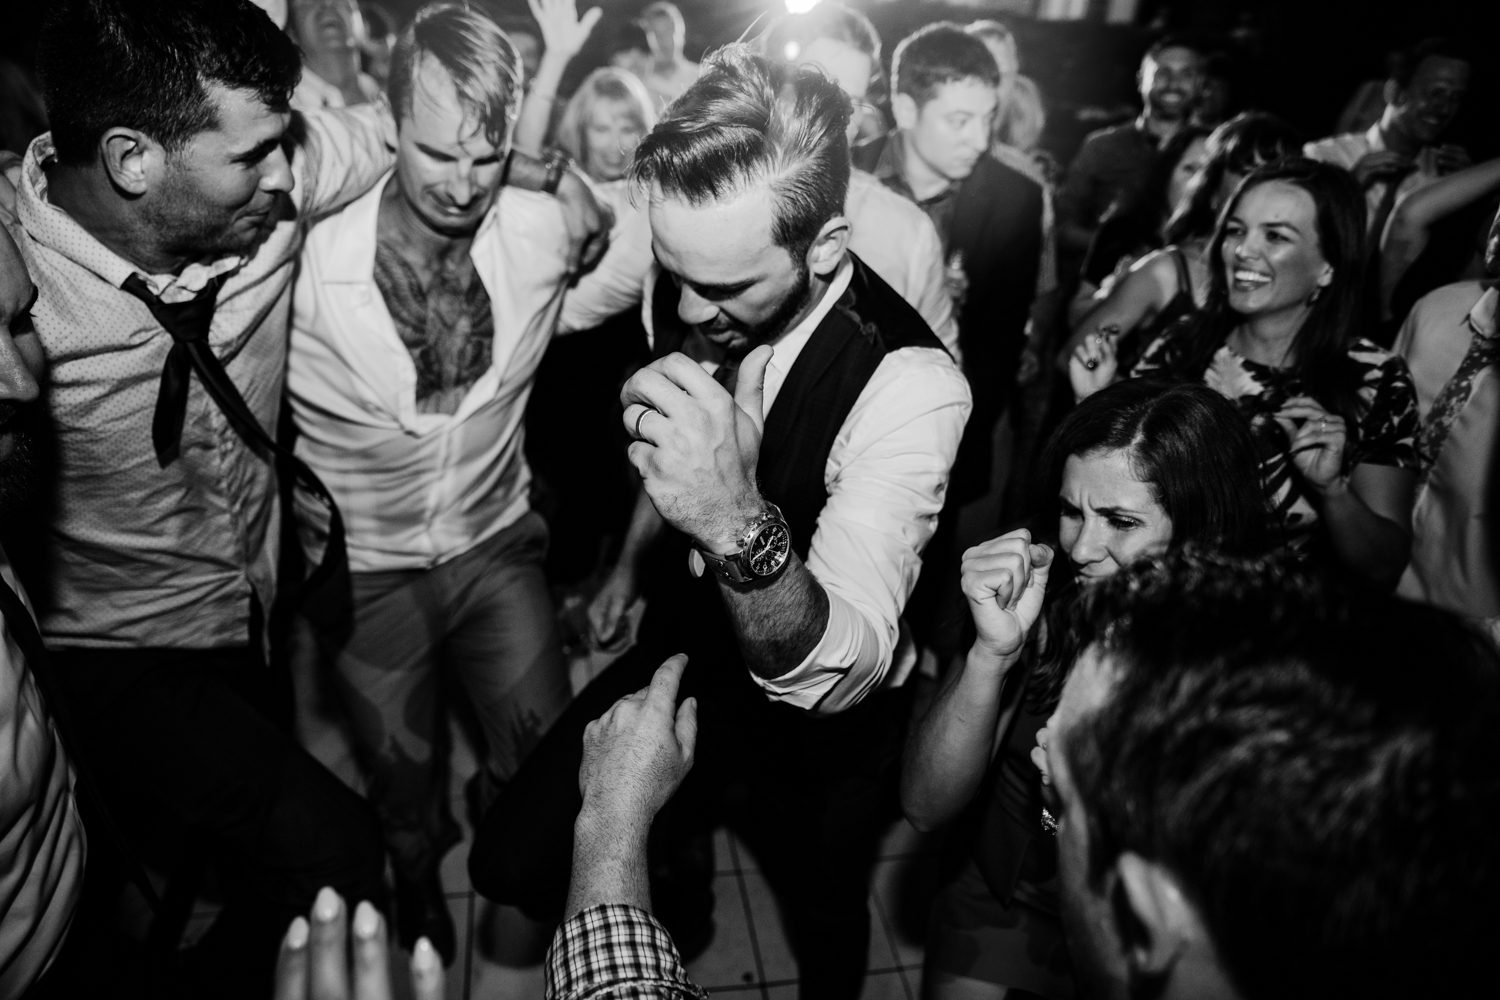 Groom dancing at his wedding reception with friends